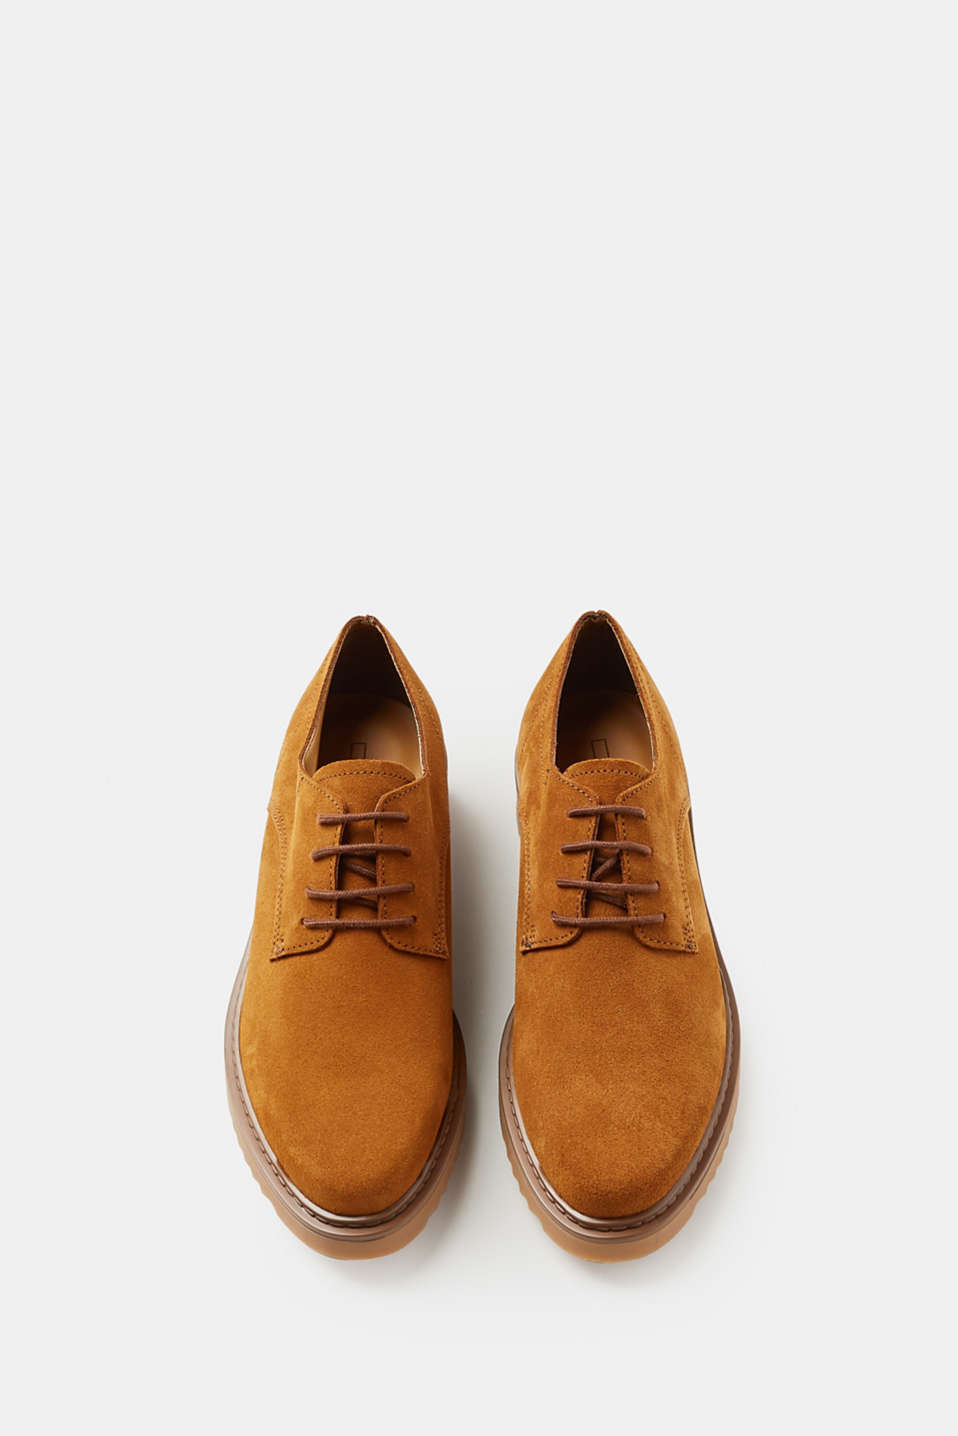 Lace-up leather shoes with a platform sole